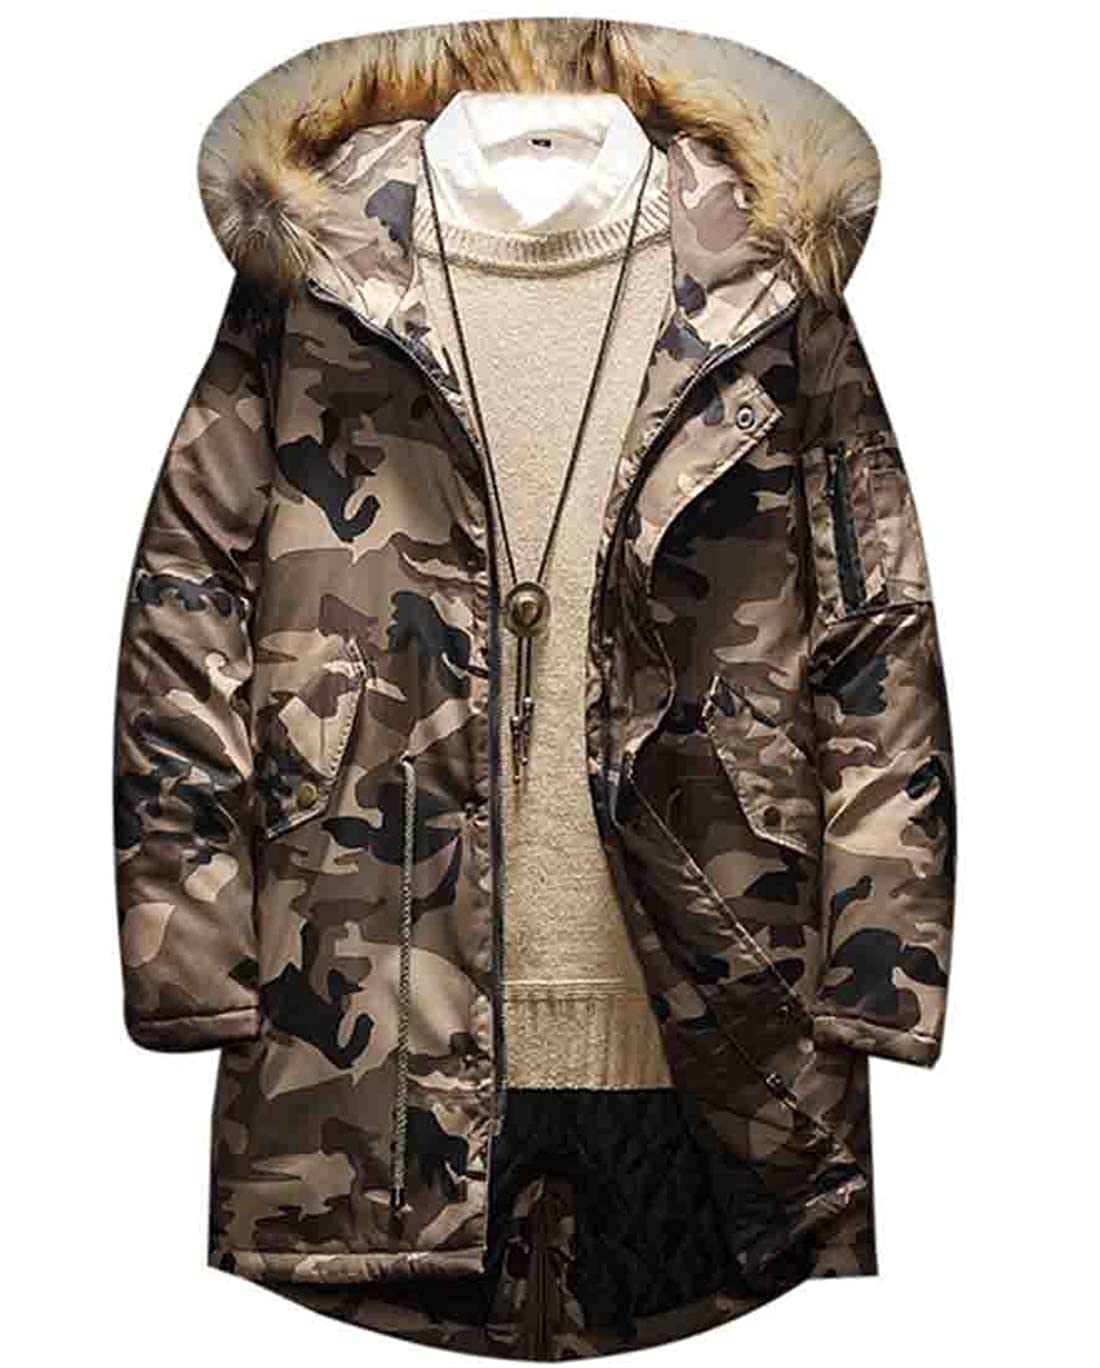 Hmarkt Mens Winter Quilted Padded Drawstring Faux Fur Collar Camo Print Casual Hooded Down Puffer Jacket